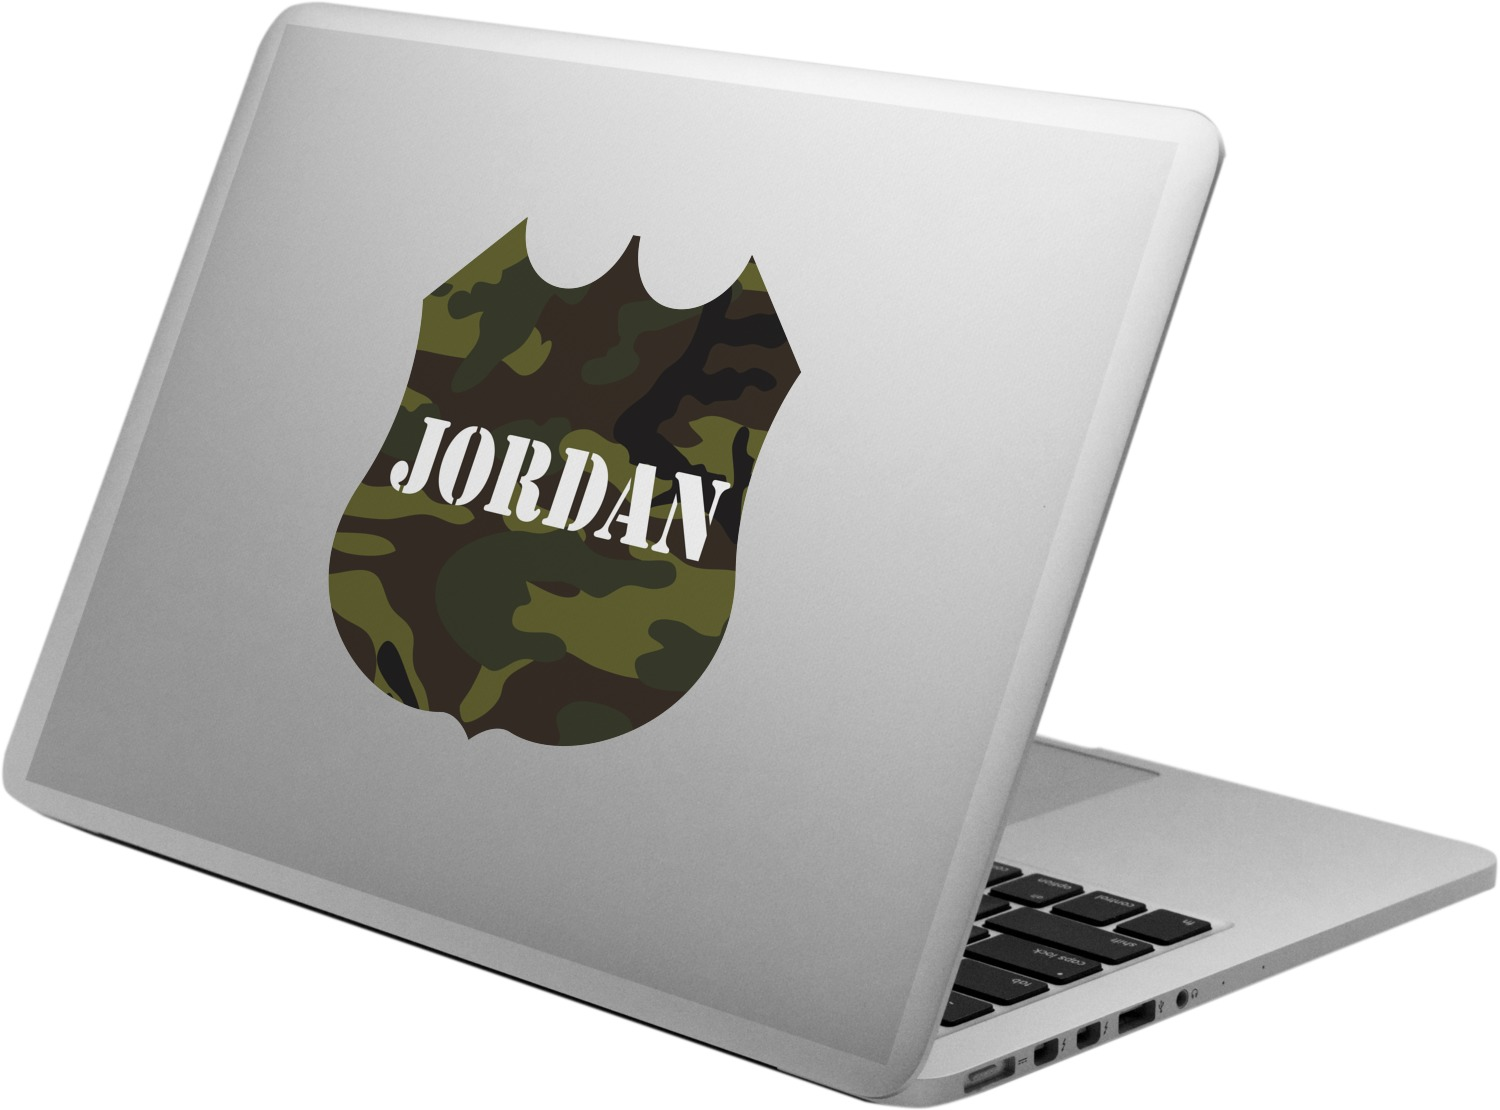 946a4b08aba Green Camo Laptop Decal (Personalized) - YouCustomizeIt